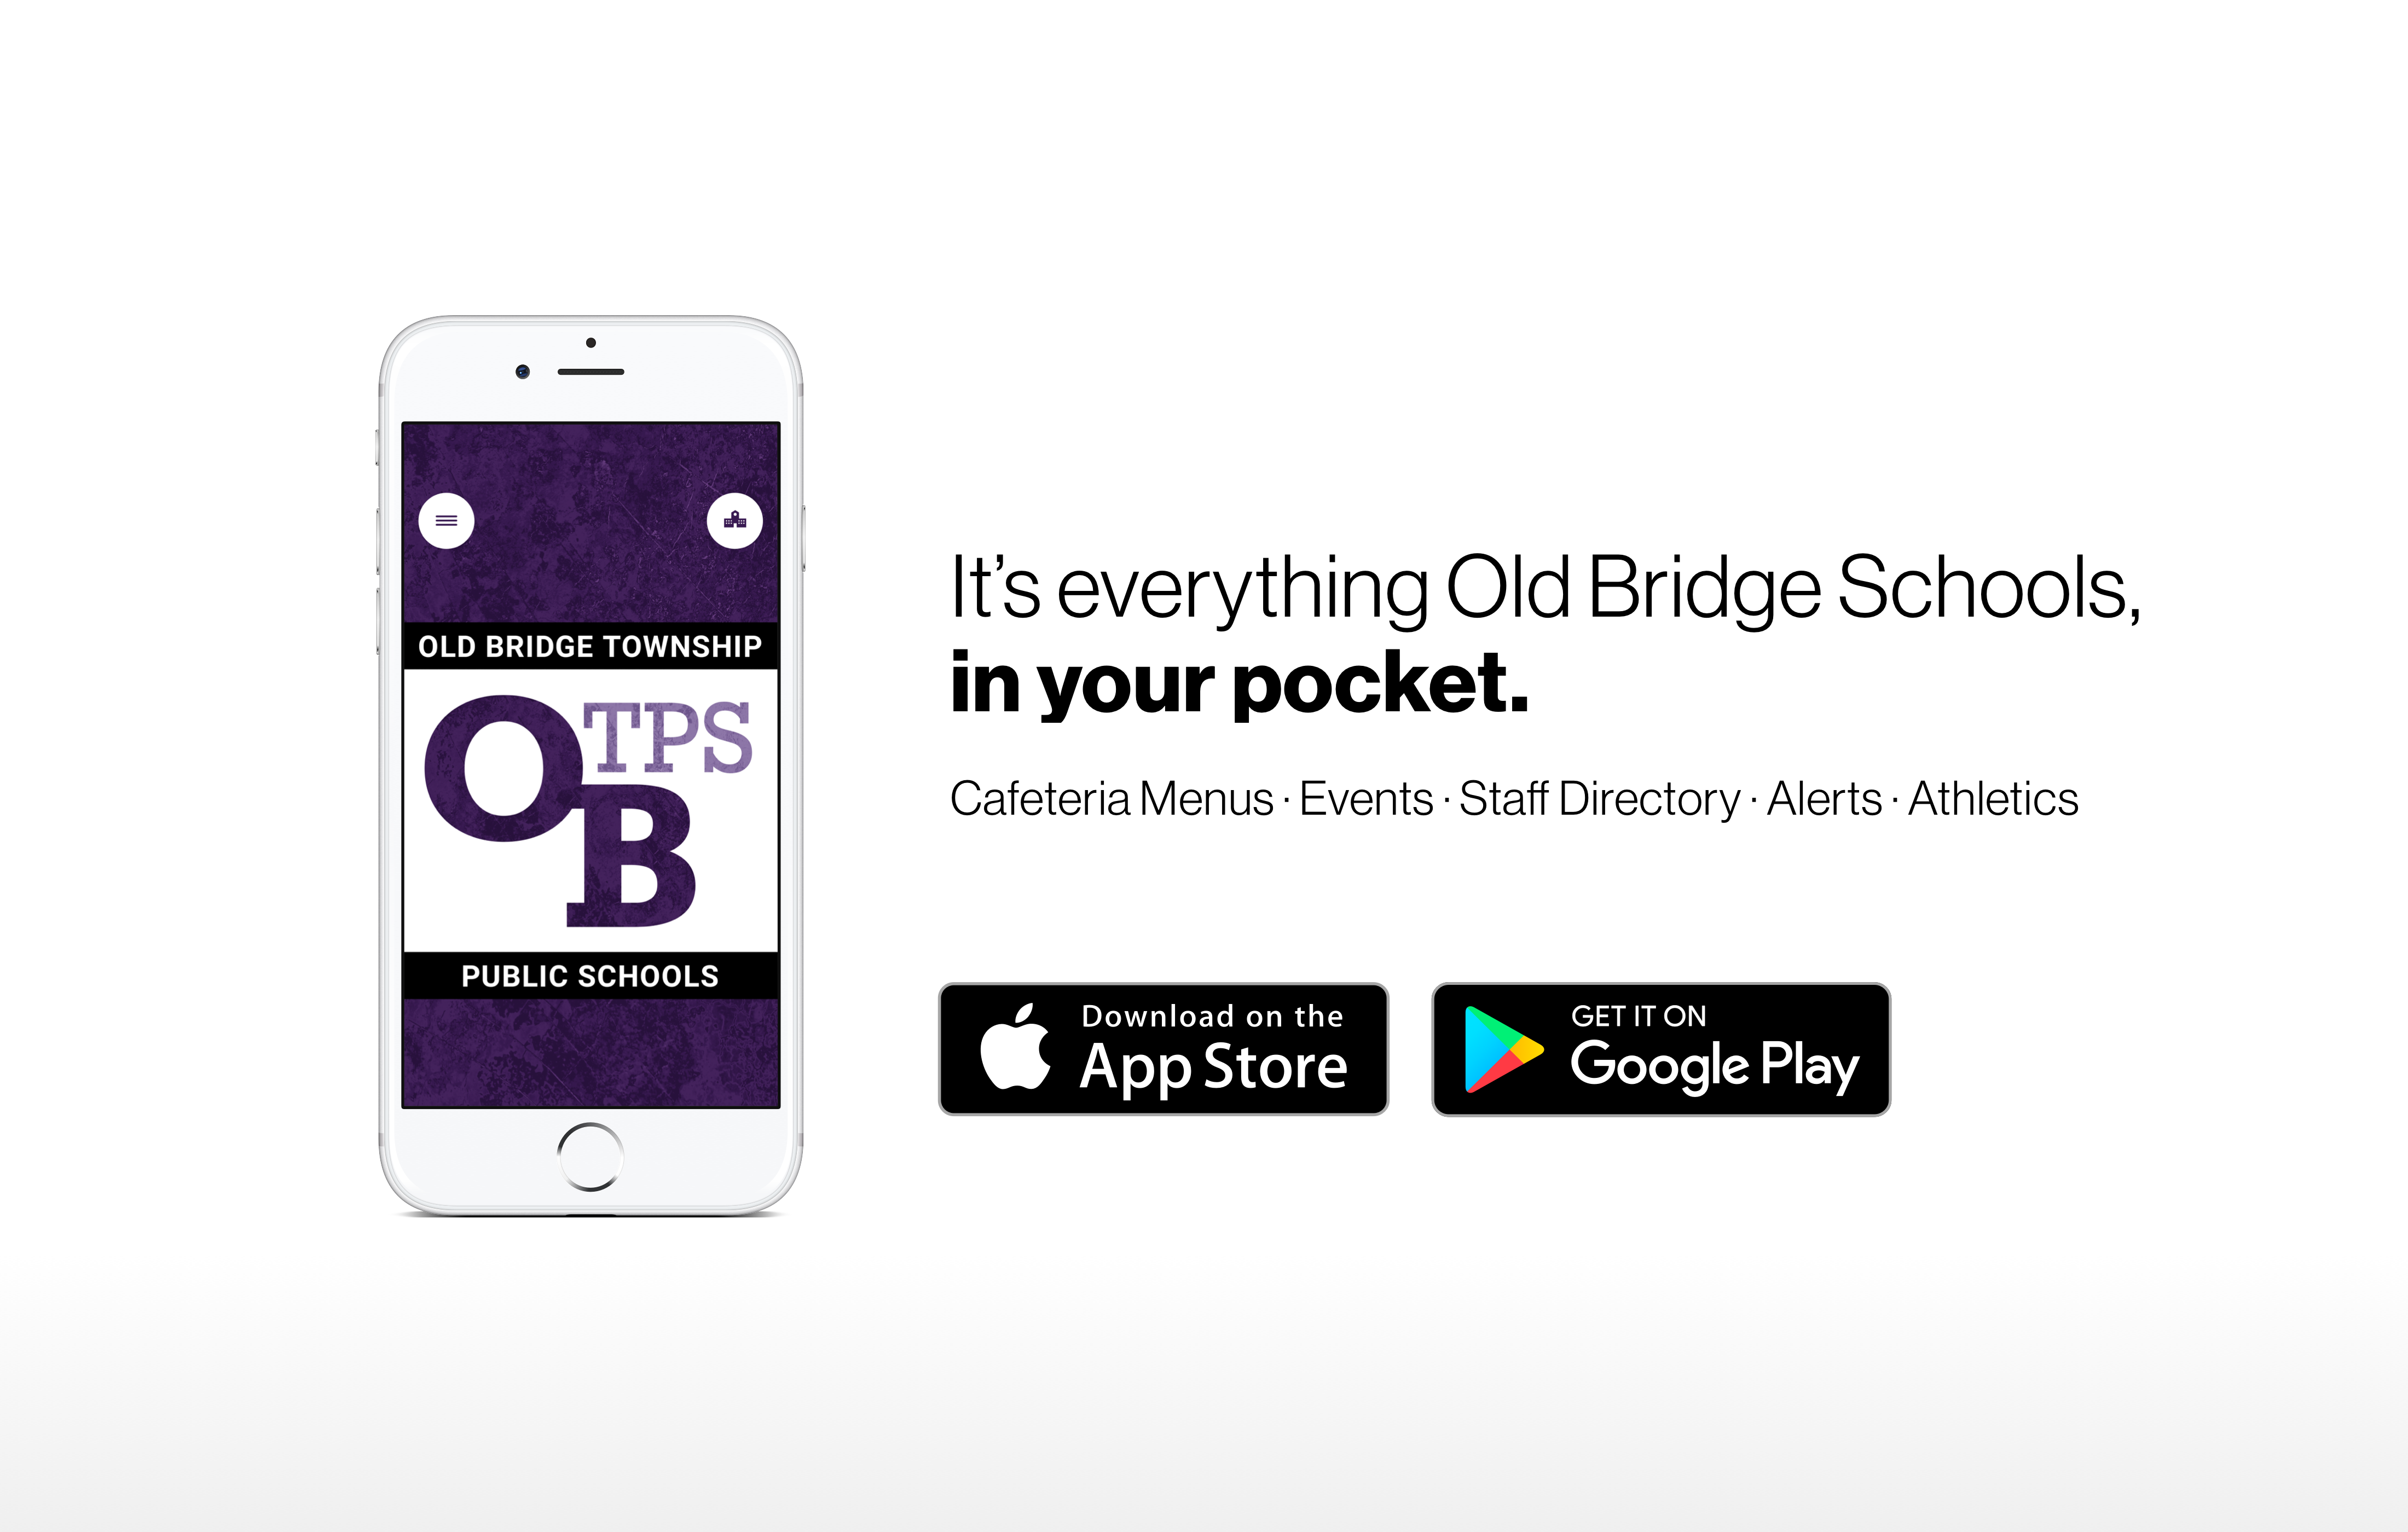 It's everything Old Bridge Schools, in your pocket.